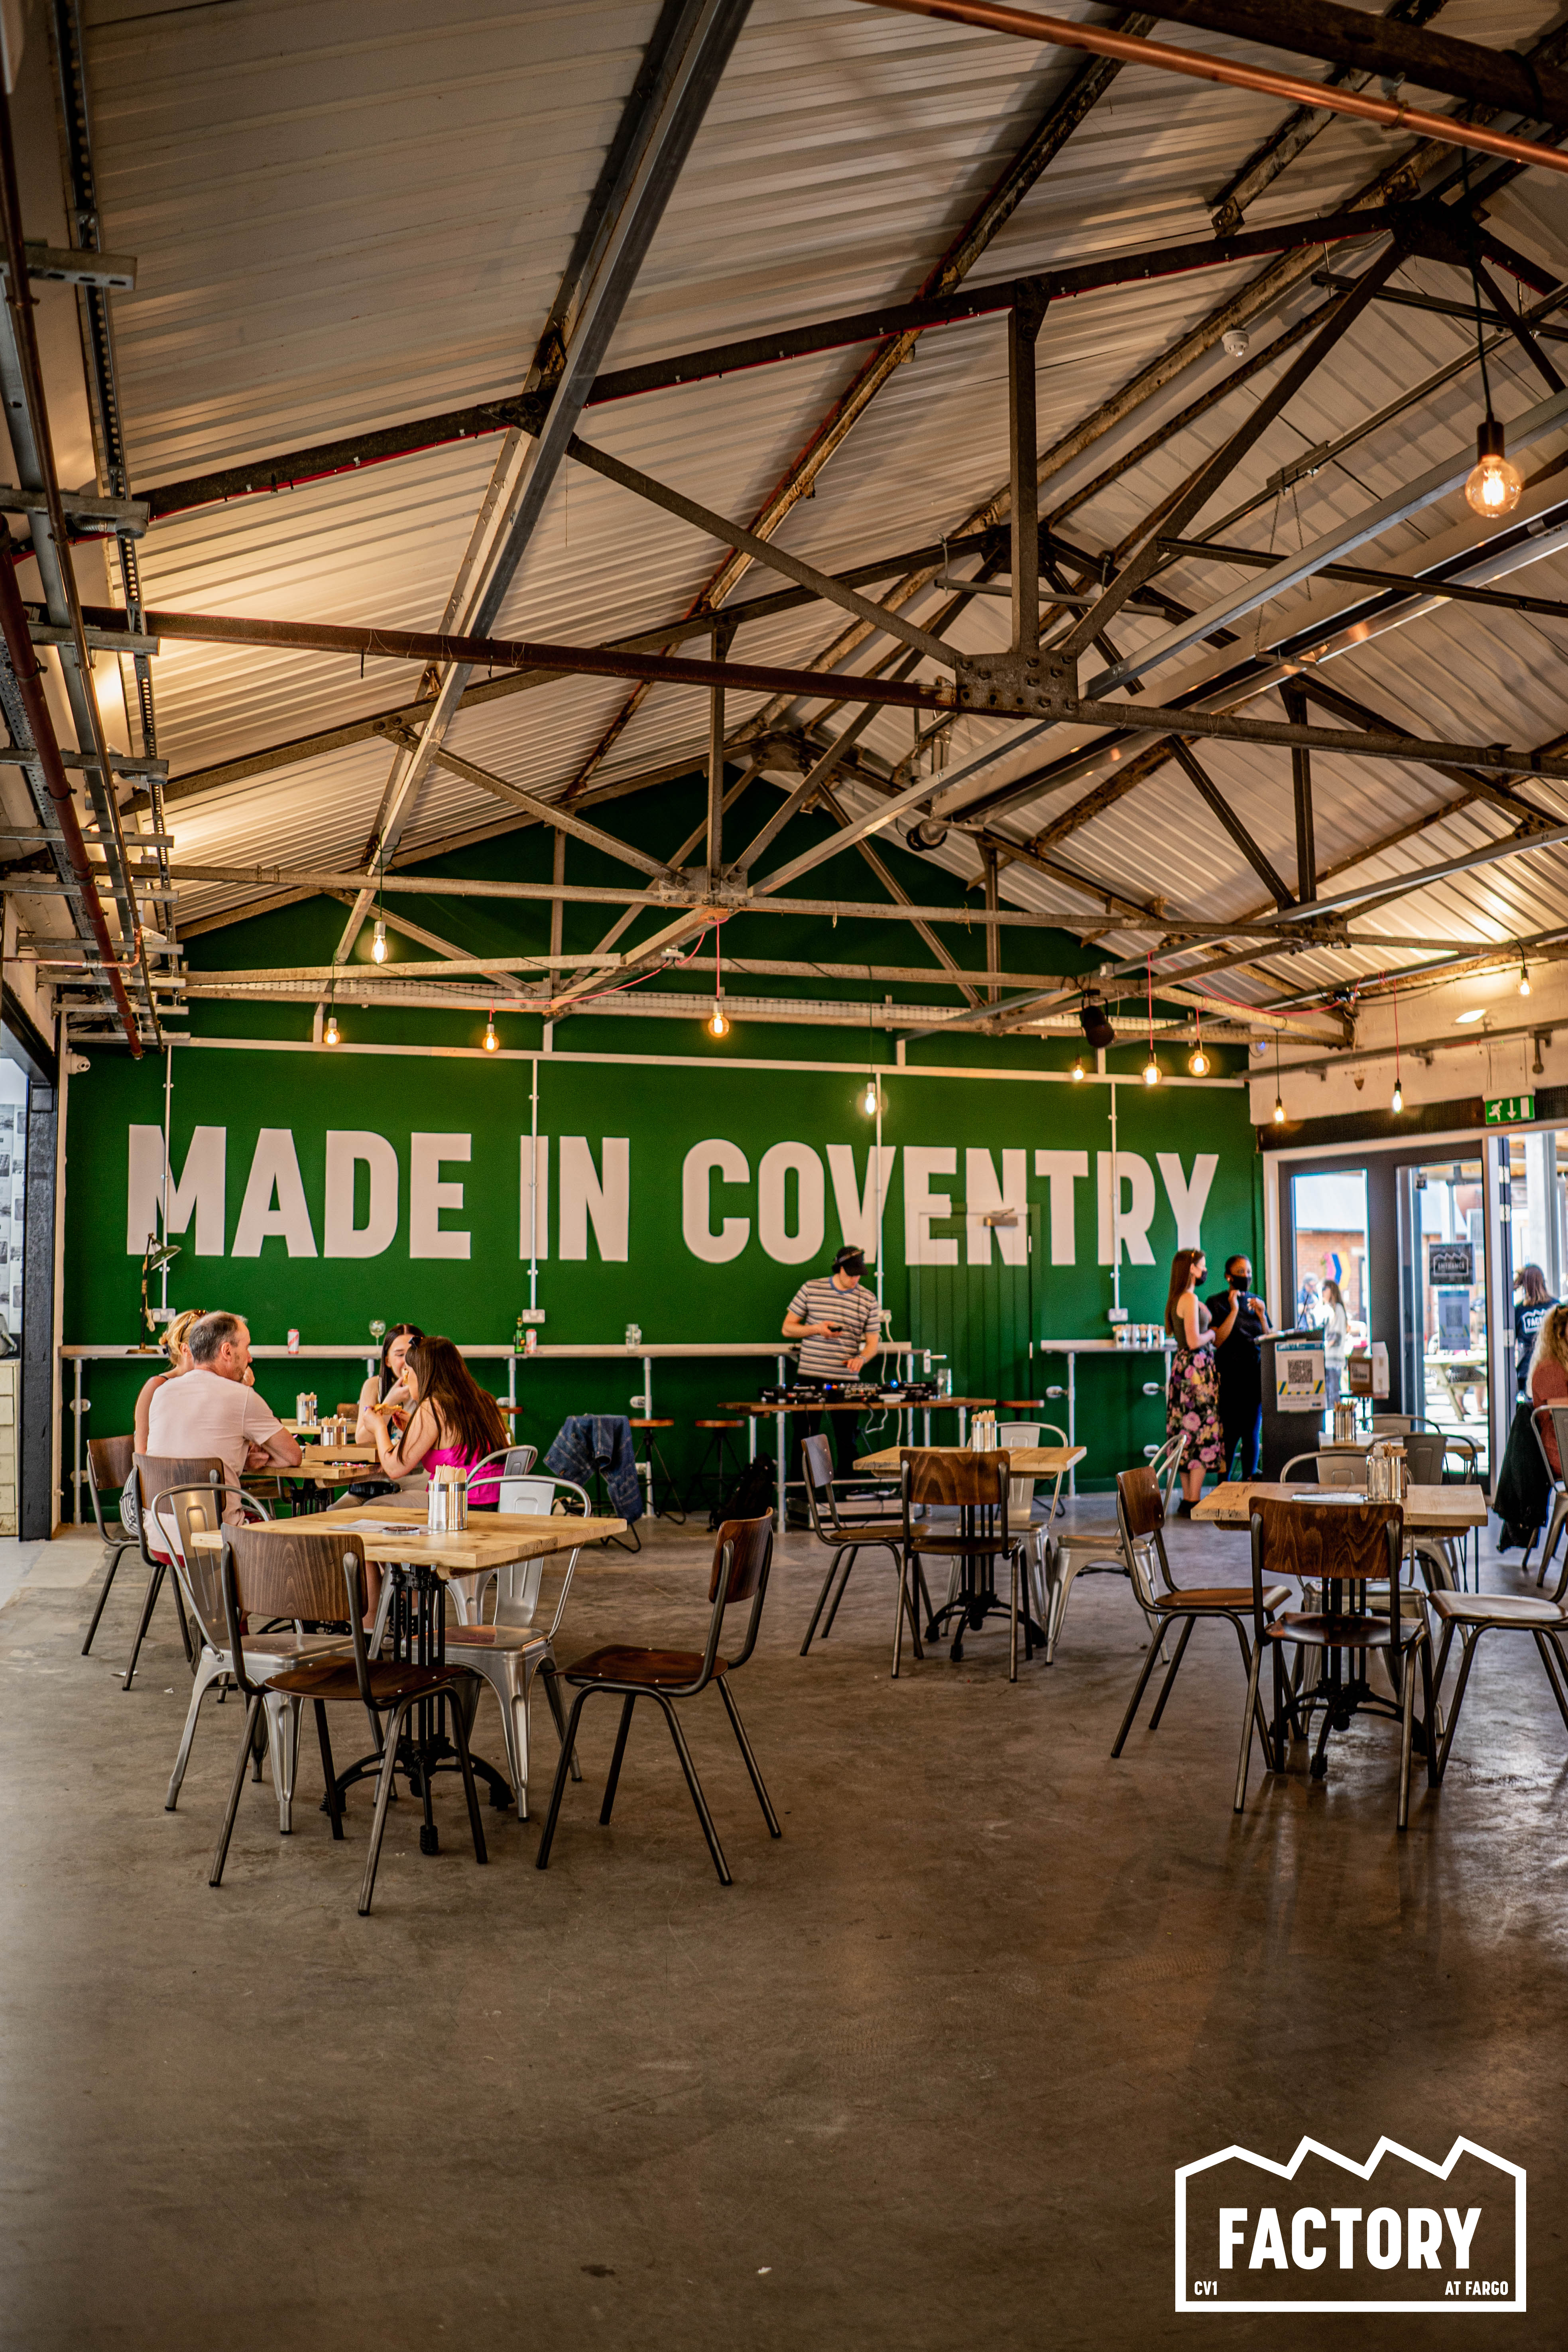 Made in Coventry at Factory